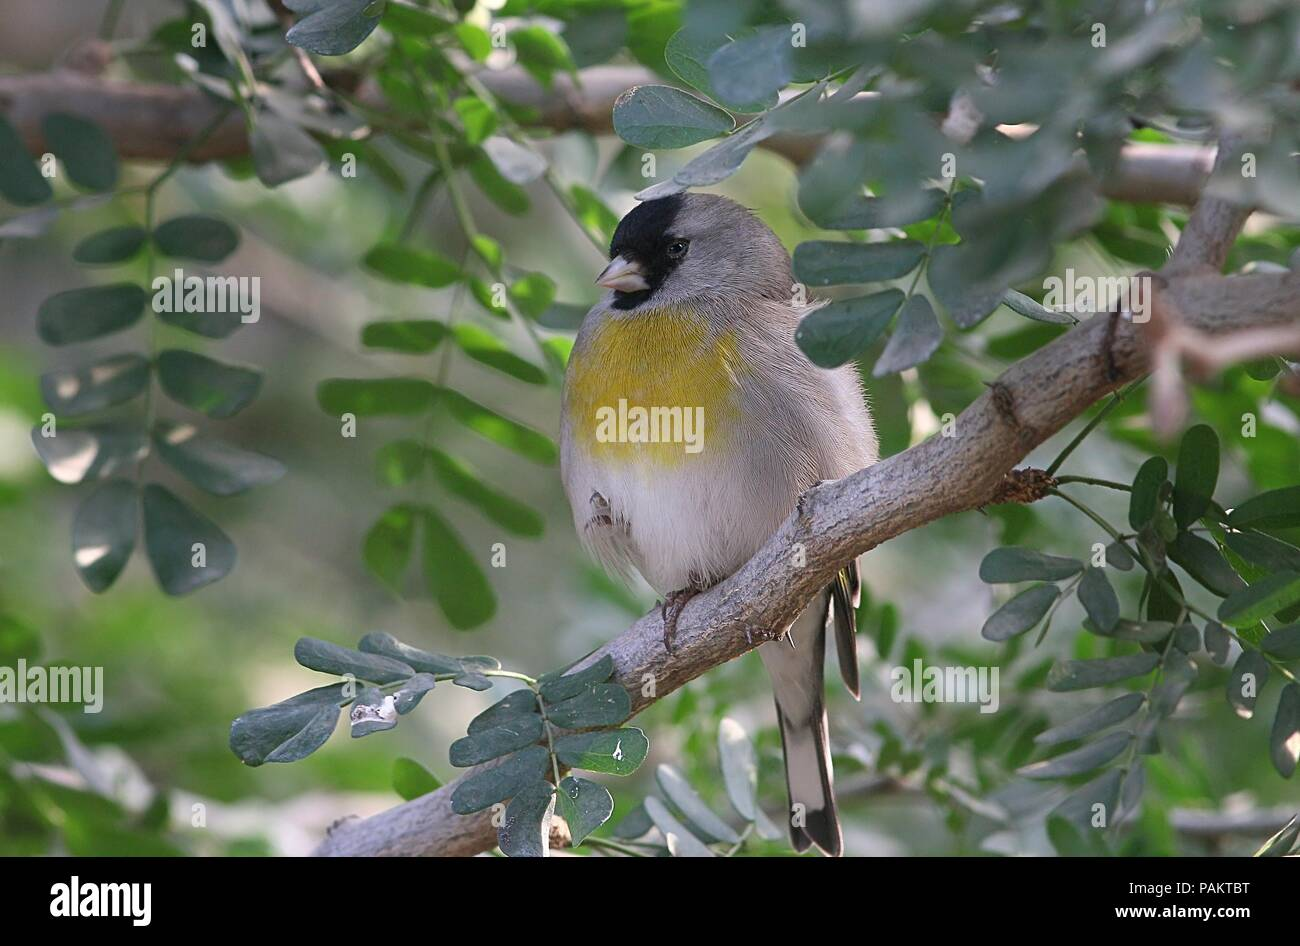 Lawrence's goldfinch (Spinus lawrencei, Carduelis lawrencei), native to California and Northern Mexico Stock Photo